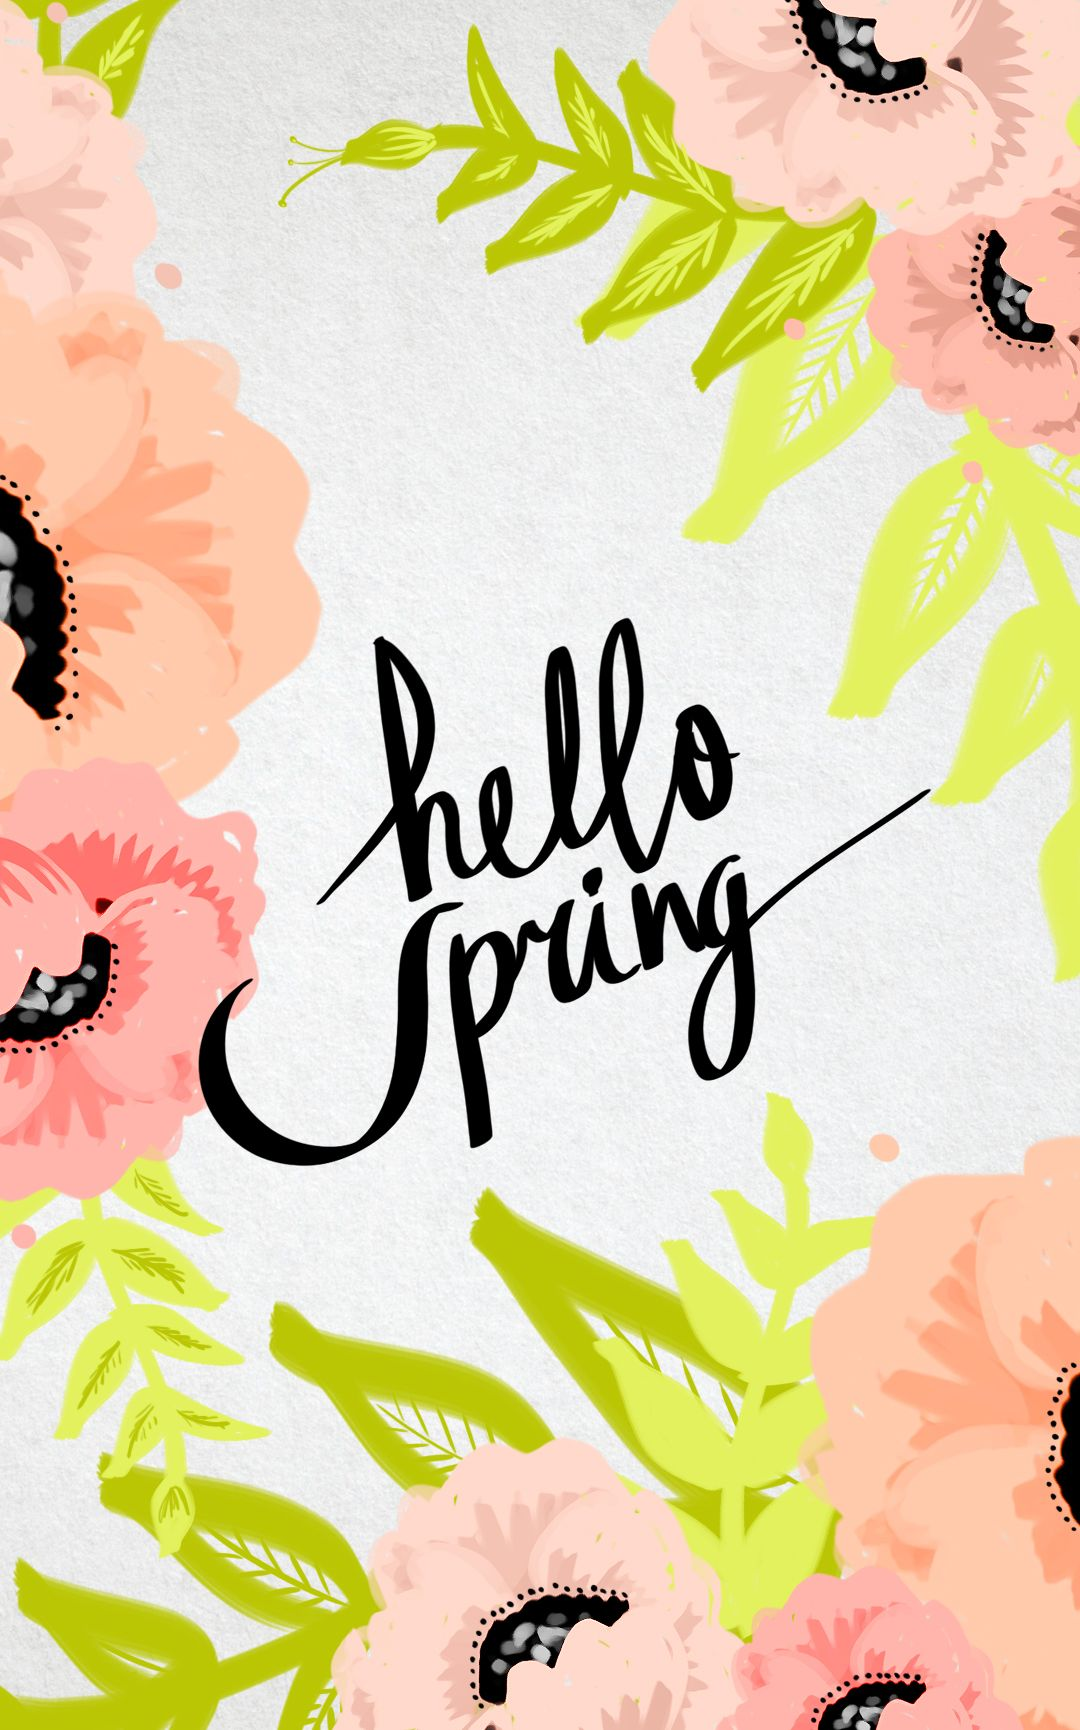 iphone_hello_spring_white_with_text_by_cocorie-d7ce5qd.jpg 1,080×1,730 pixels